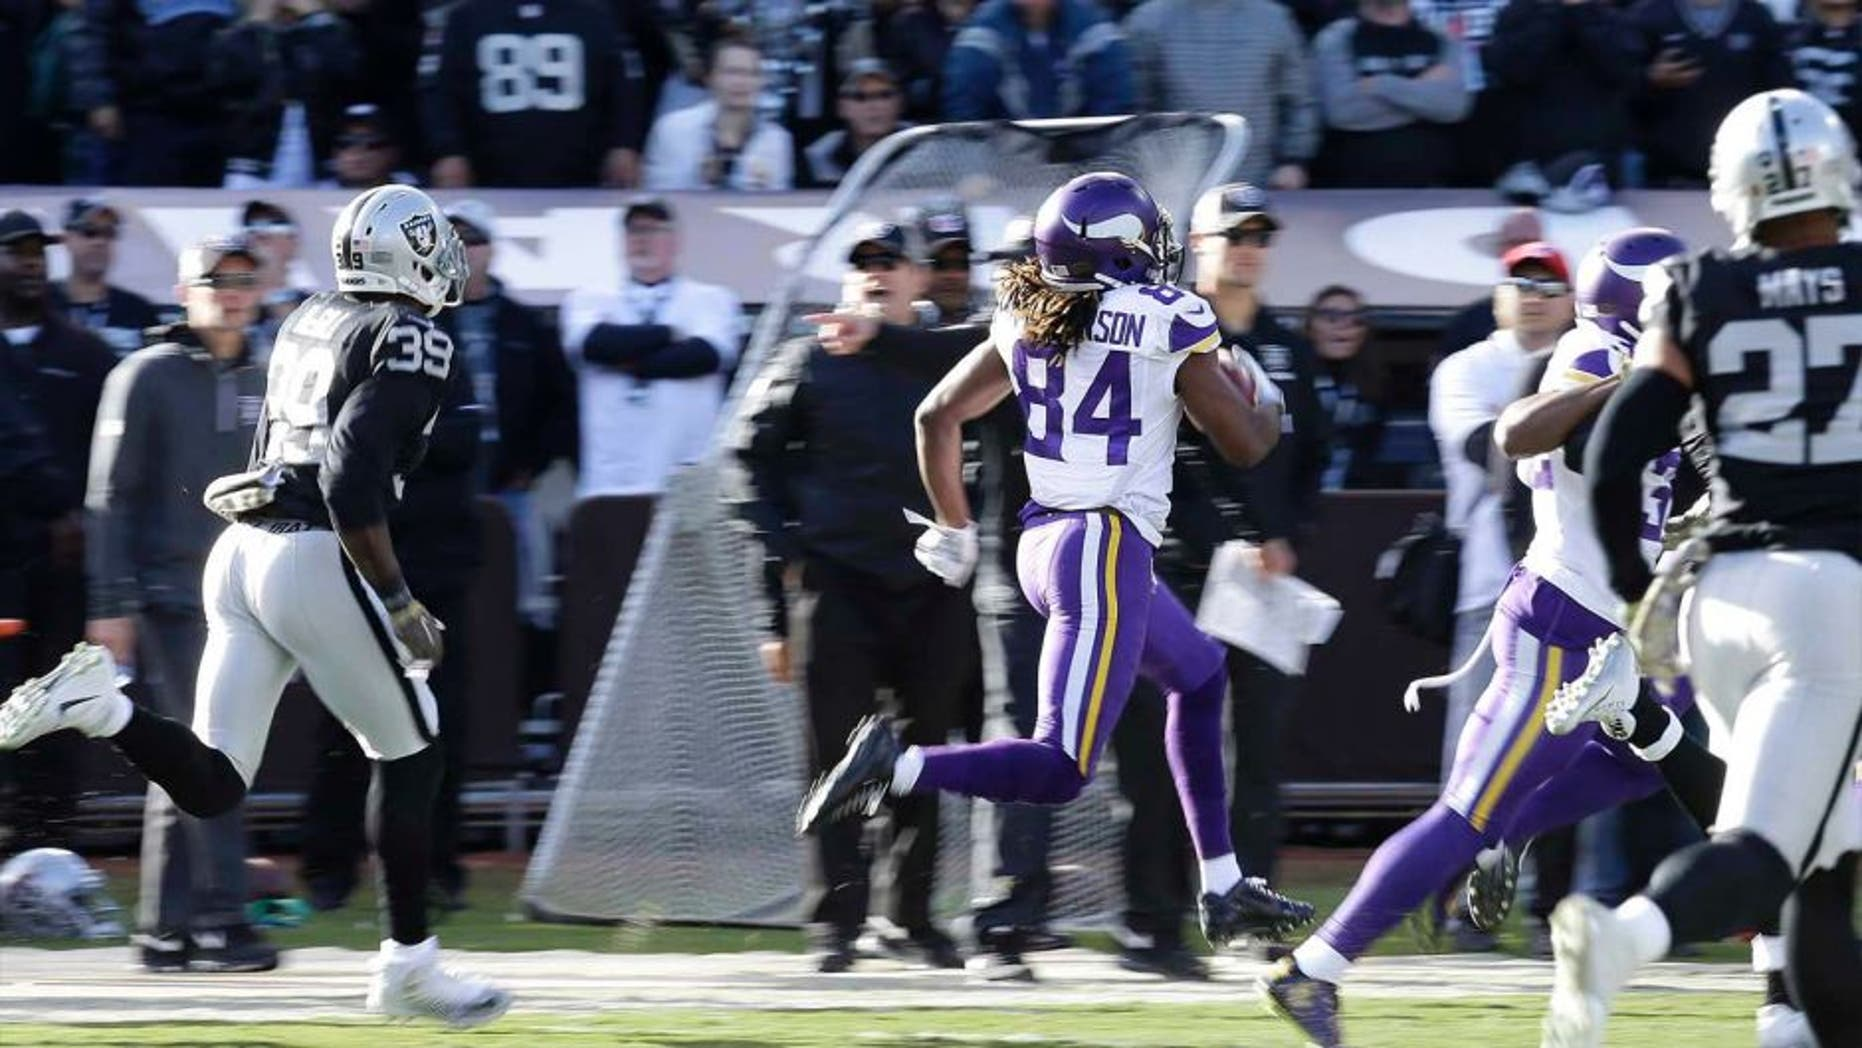 Minnesota Vikings wide receiver Cordarrelle Patterson returns a kickoff for a touchdown against the Oakland Raiders during the first half in Oakland, Calif., on Sunday, Nov. 15, 2015.